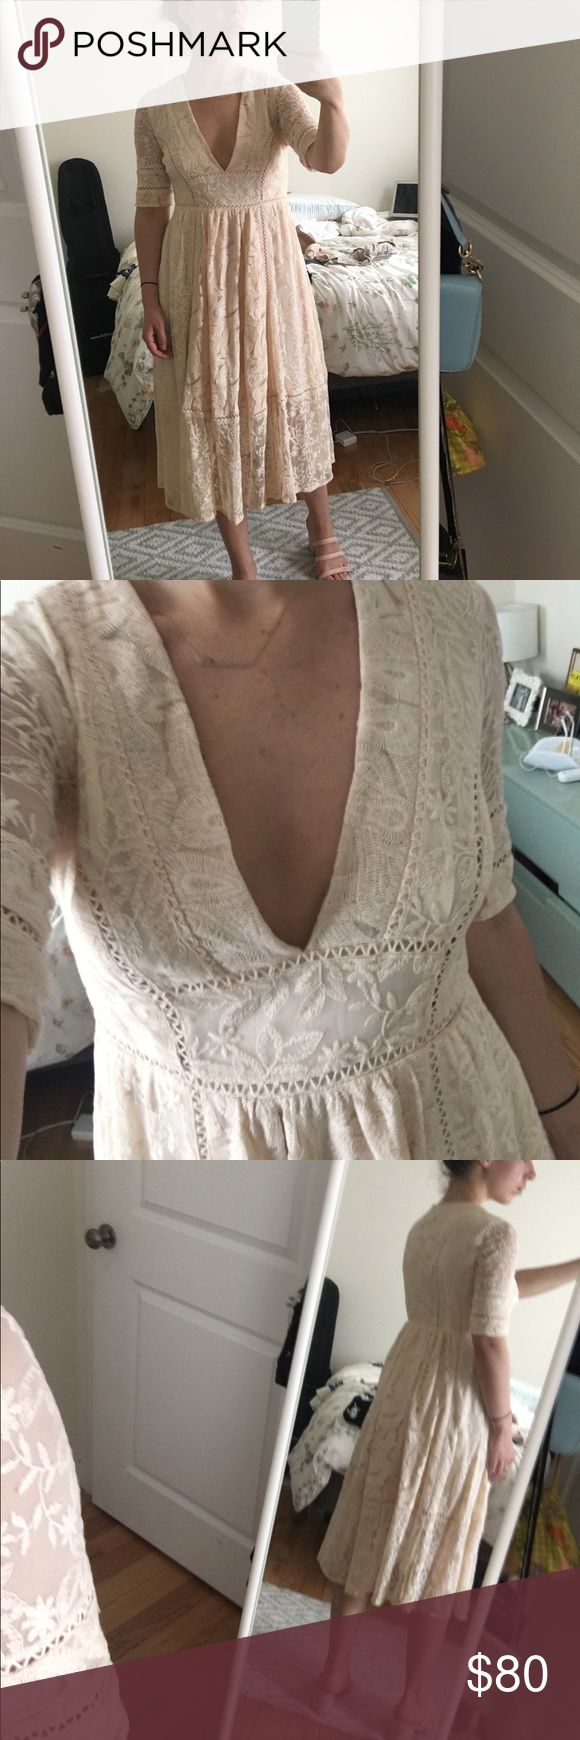 Free People Blush Lace Dress Perfect condition, Lace detail, deep v neckline. Free People Dresses Midi